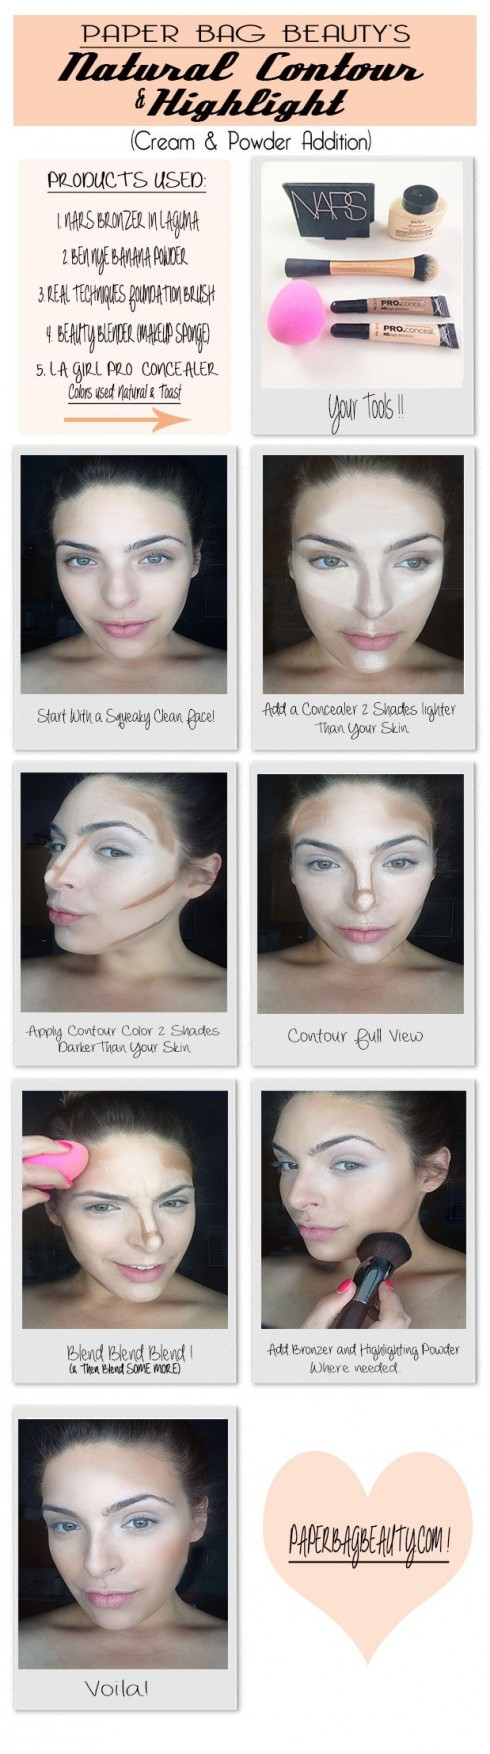 contouring-with-concealer